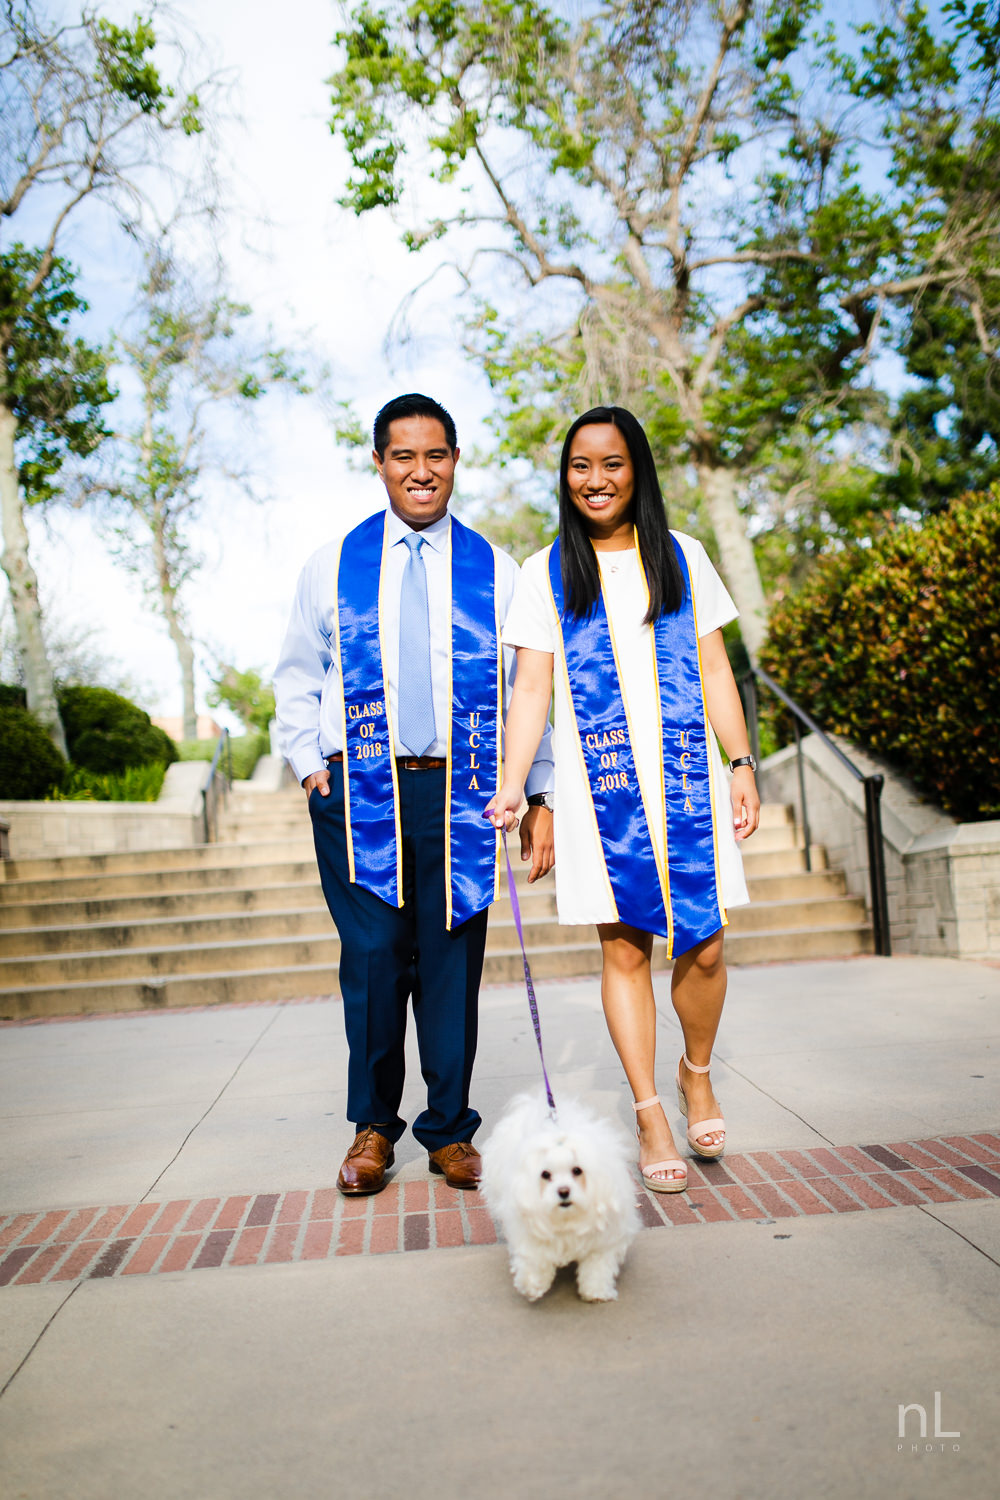 los-angeles-ucla-senior-graduation-portraits-6886.jpg